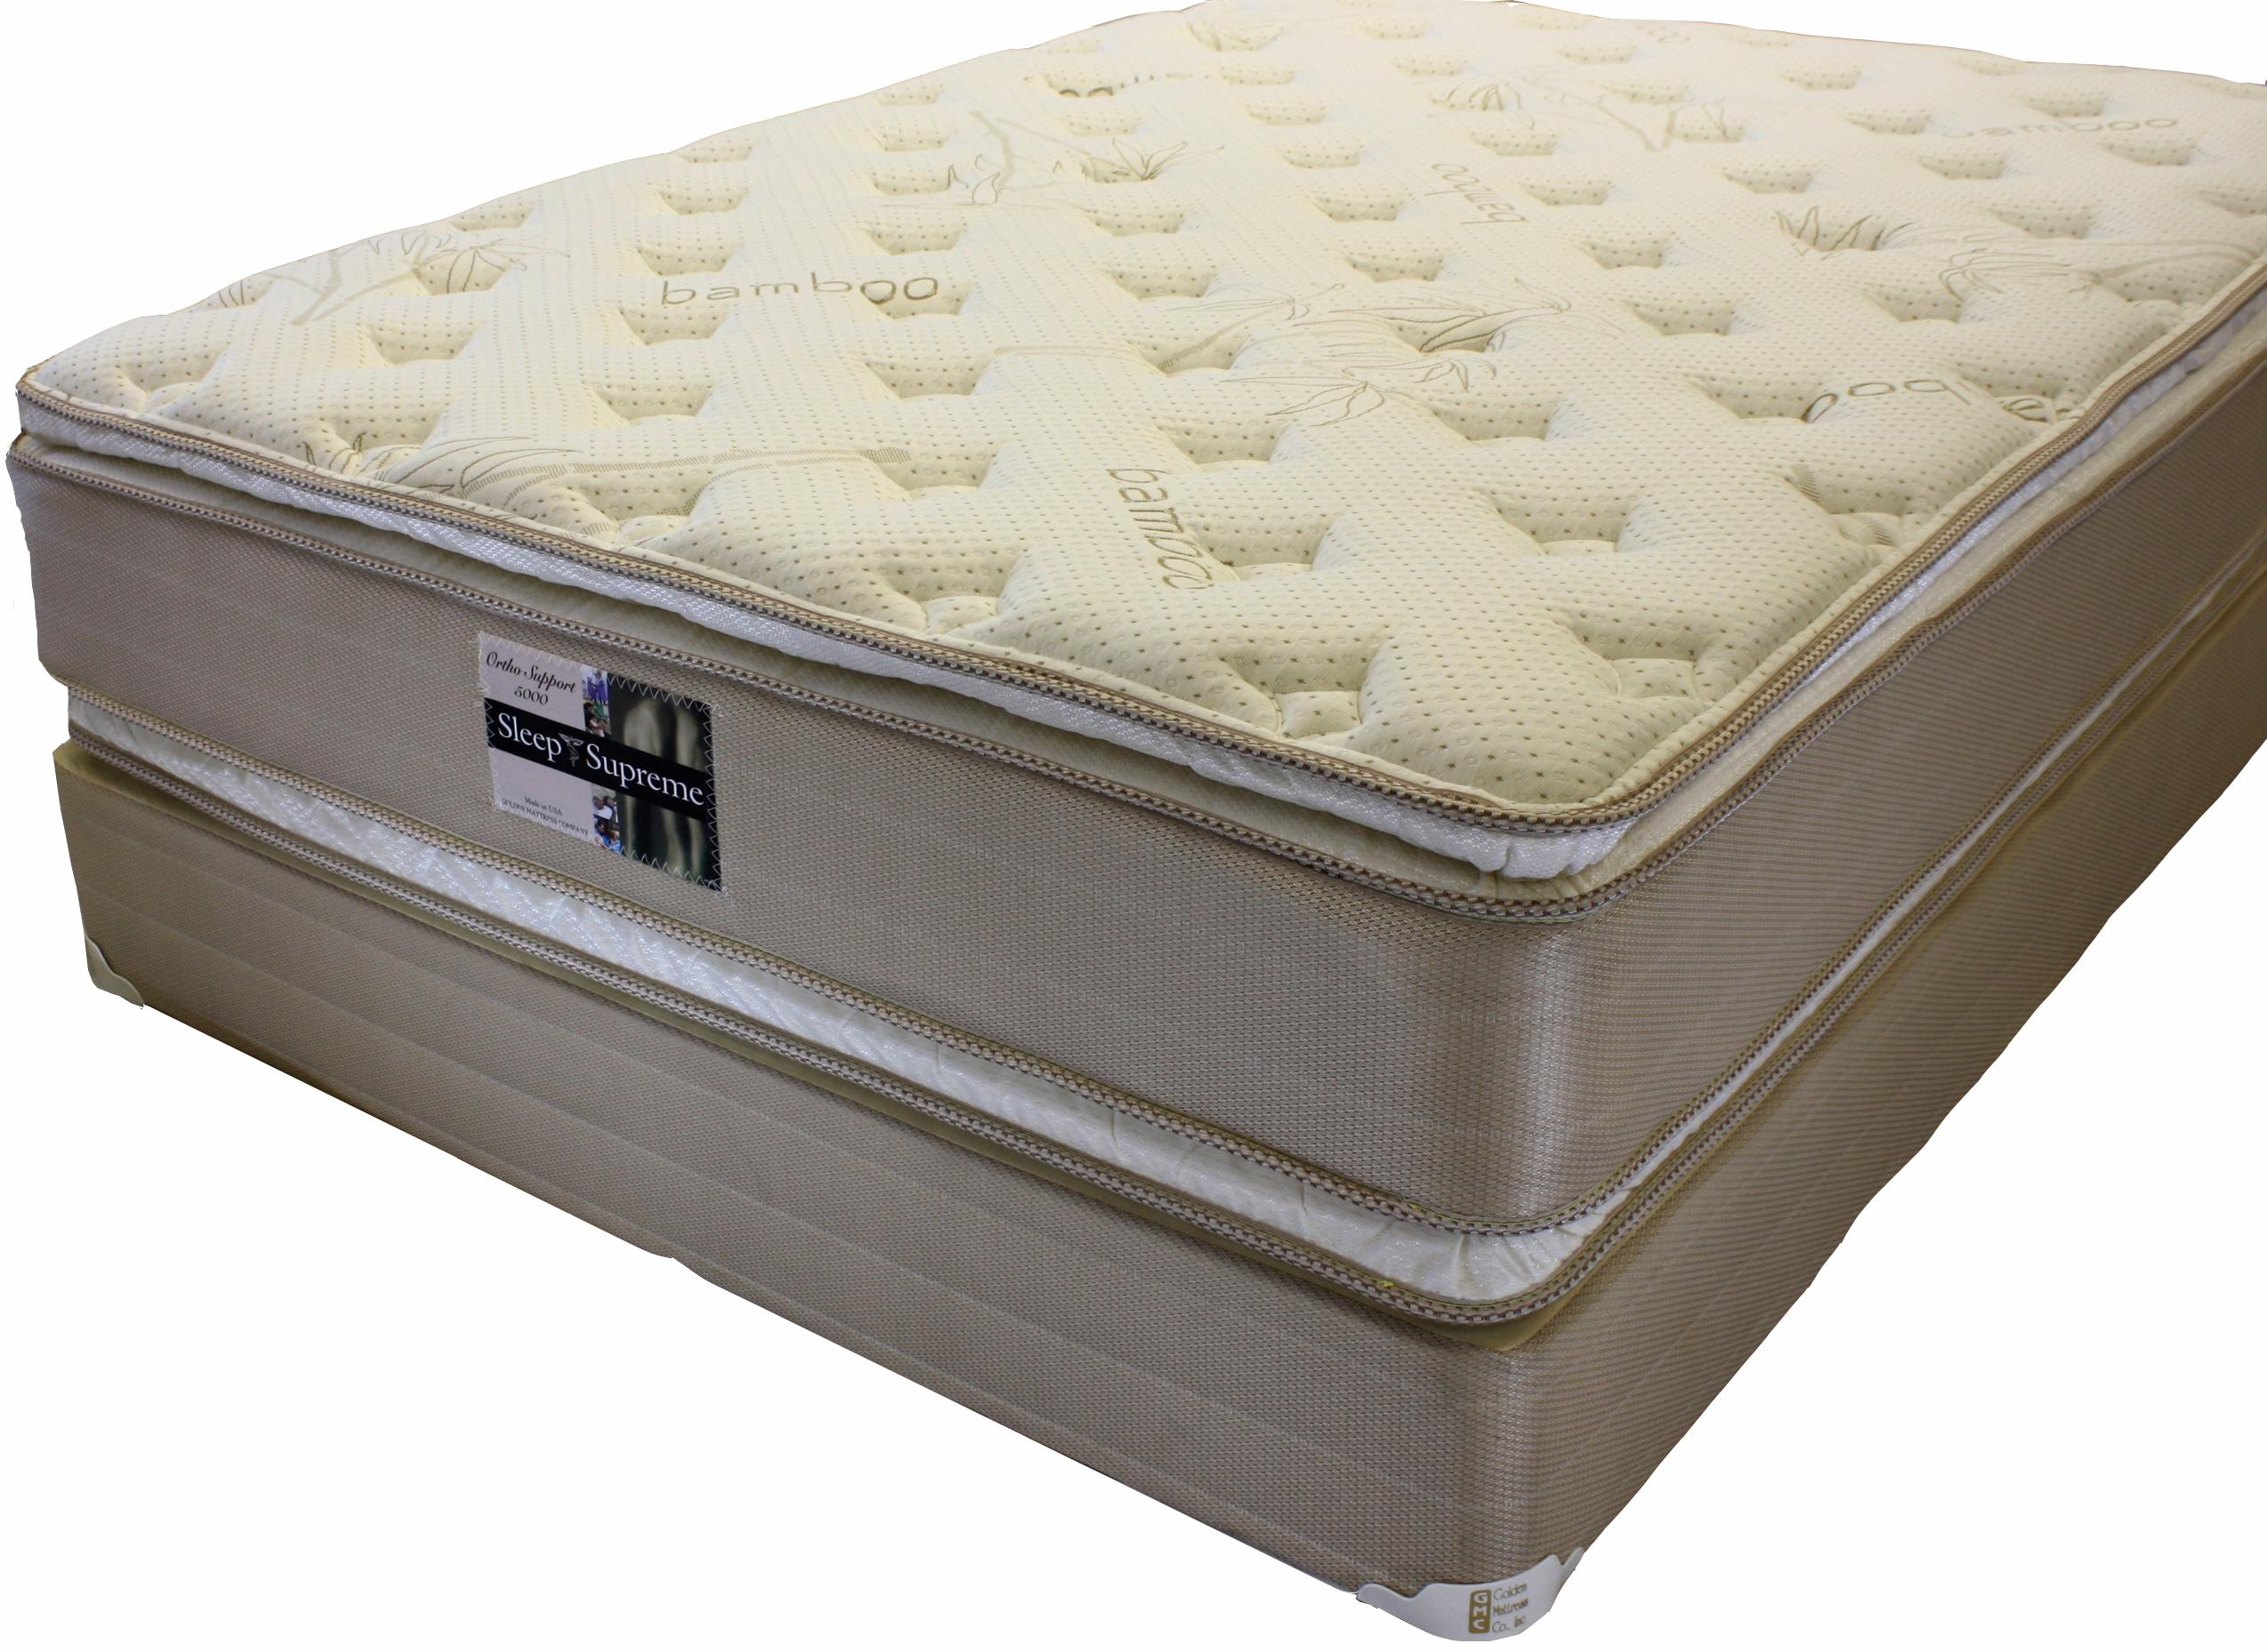 mattress queen covers inspiration files pic size uncategorized pillow pad stunning and top styles serta in best for